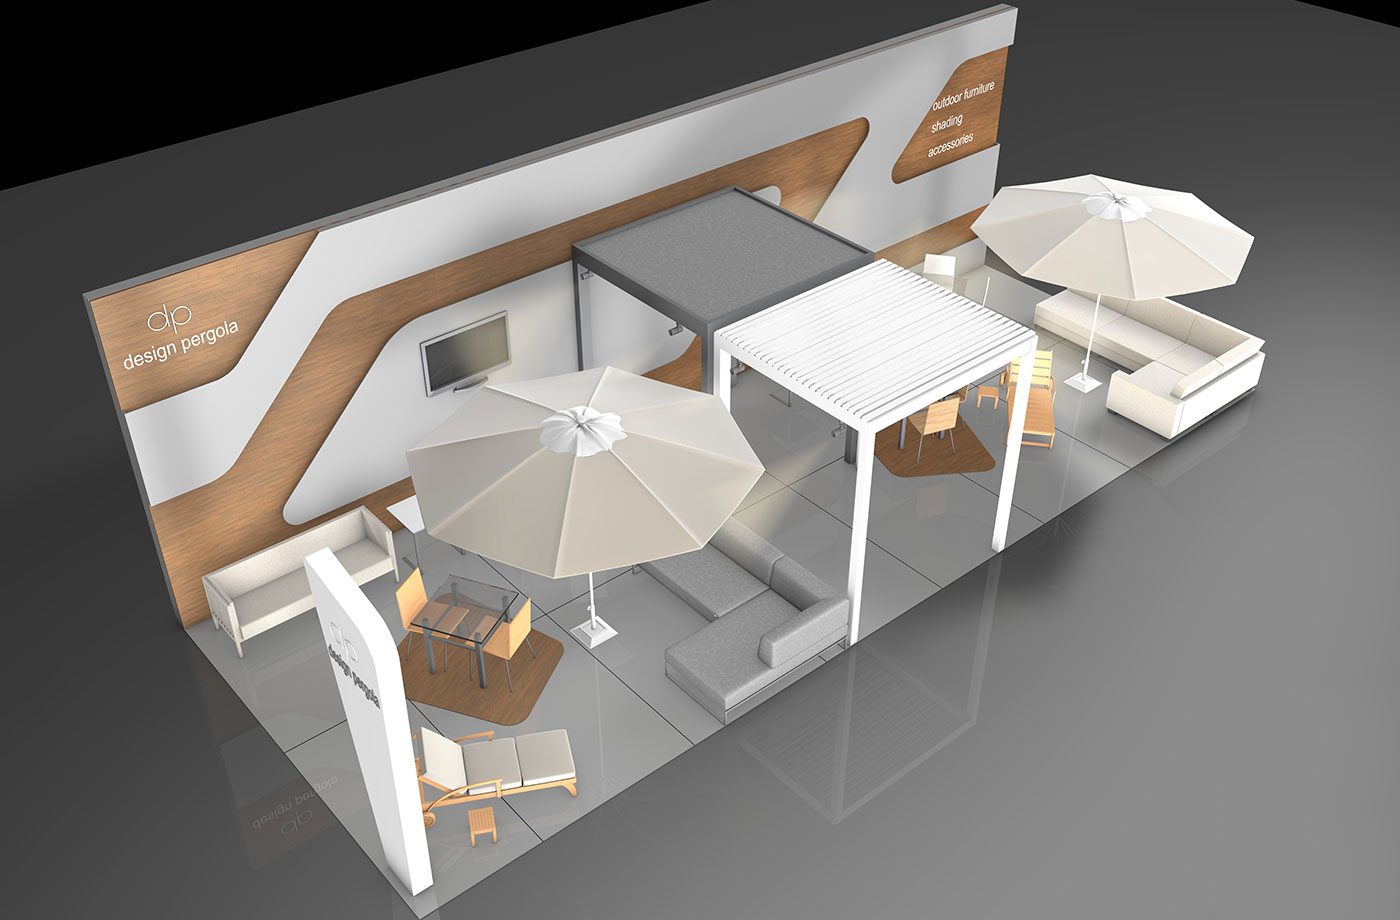 Exhibition Stand Projects : Design pergola exhibition stand